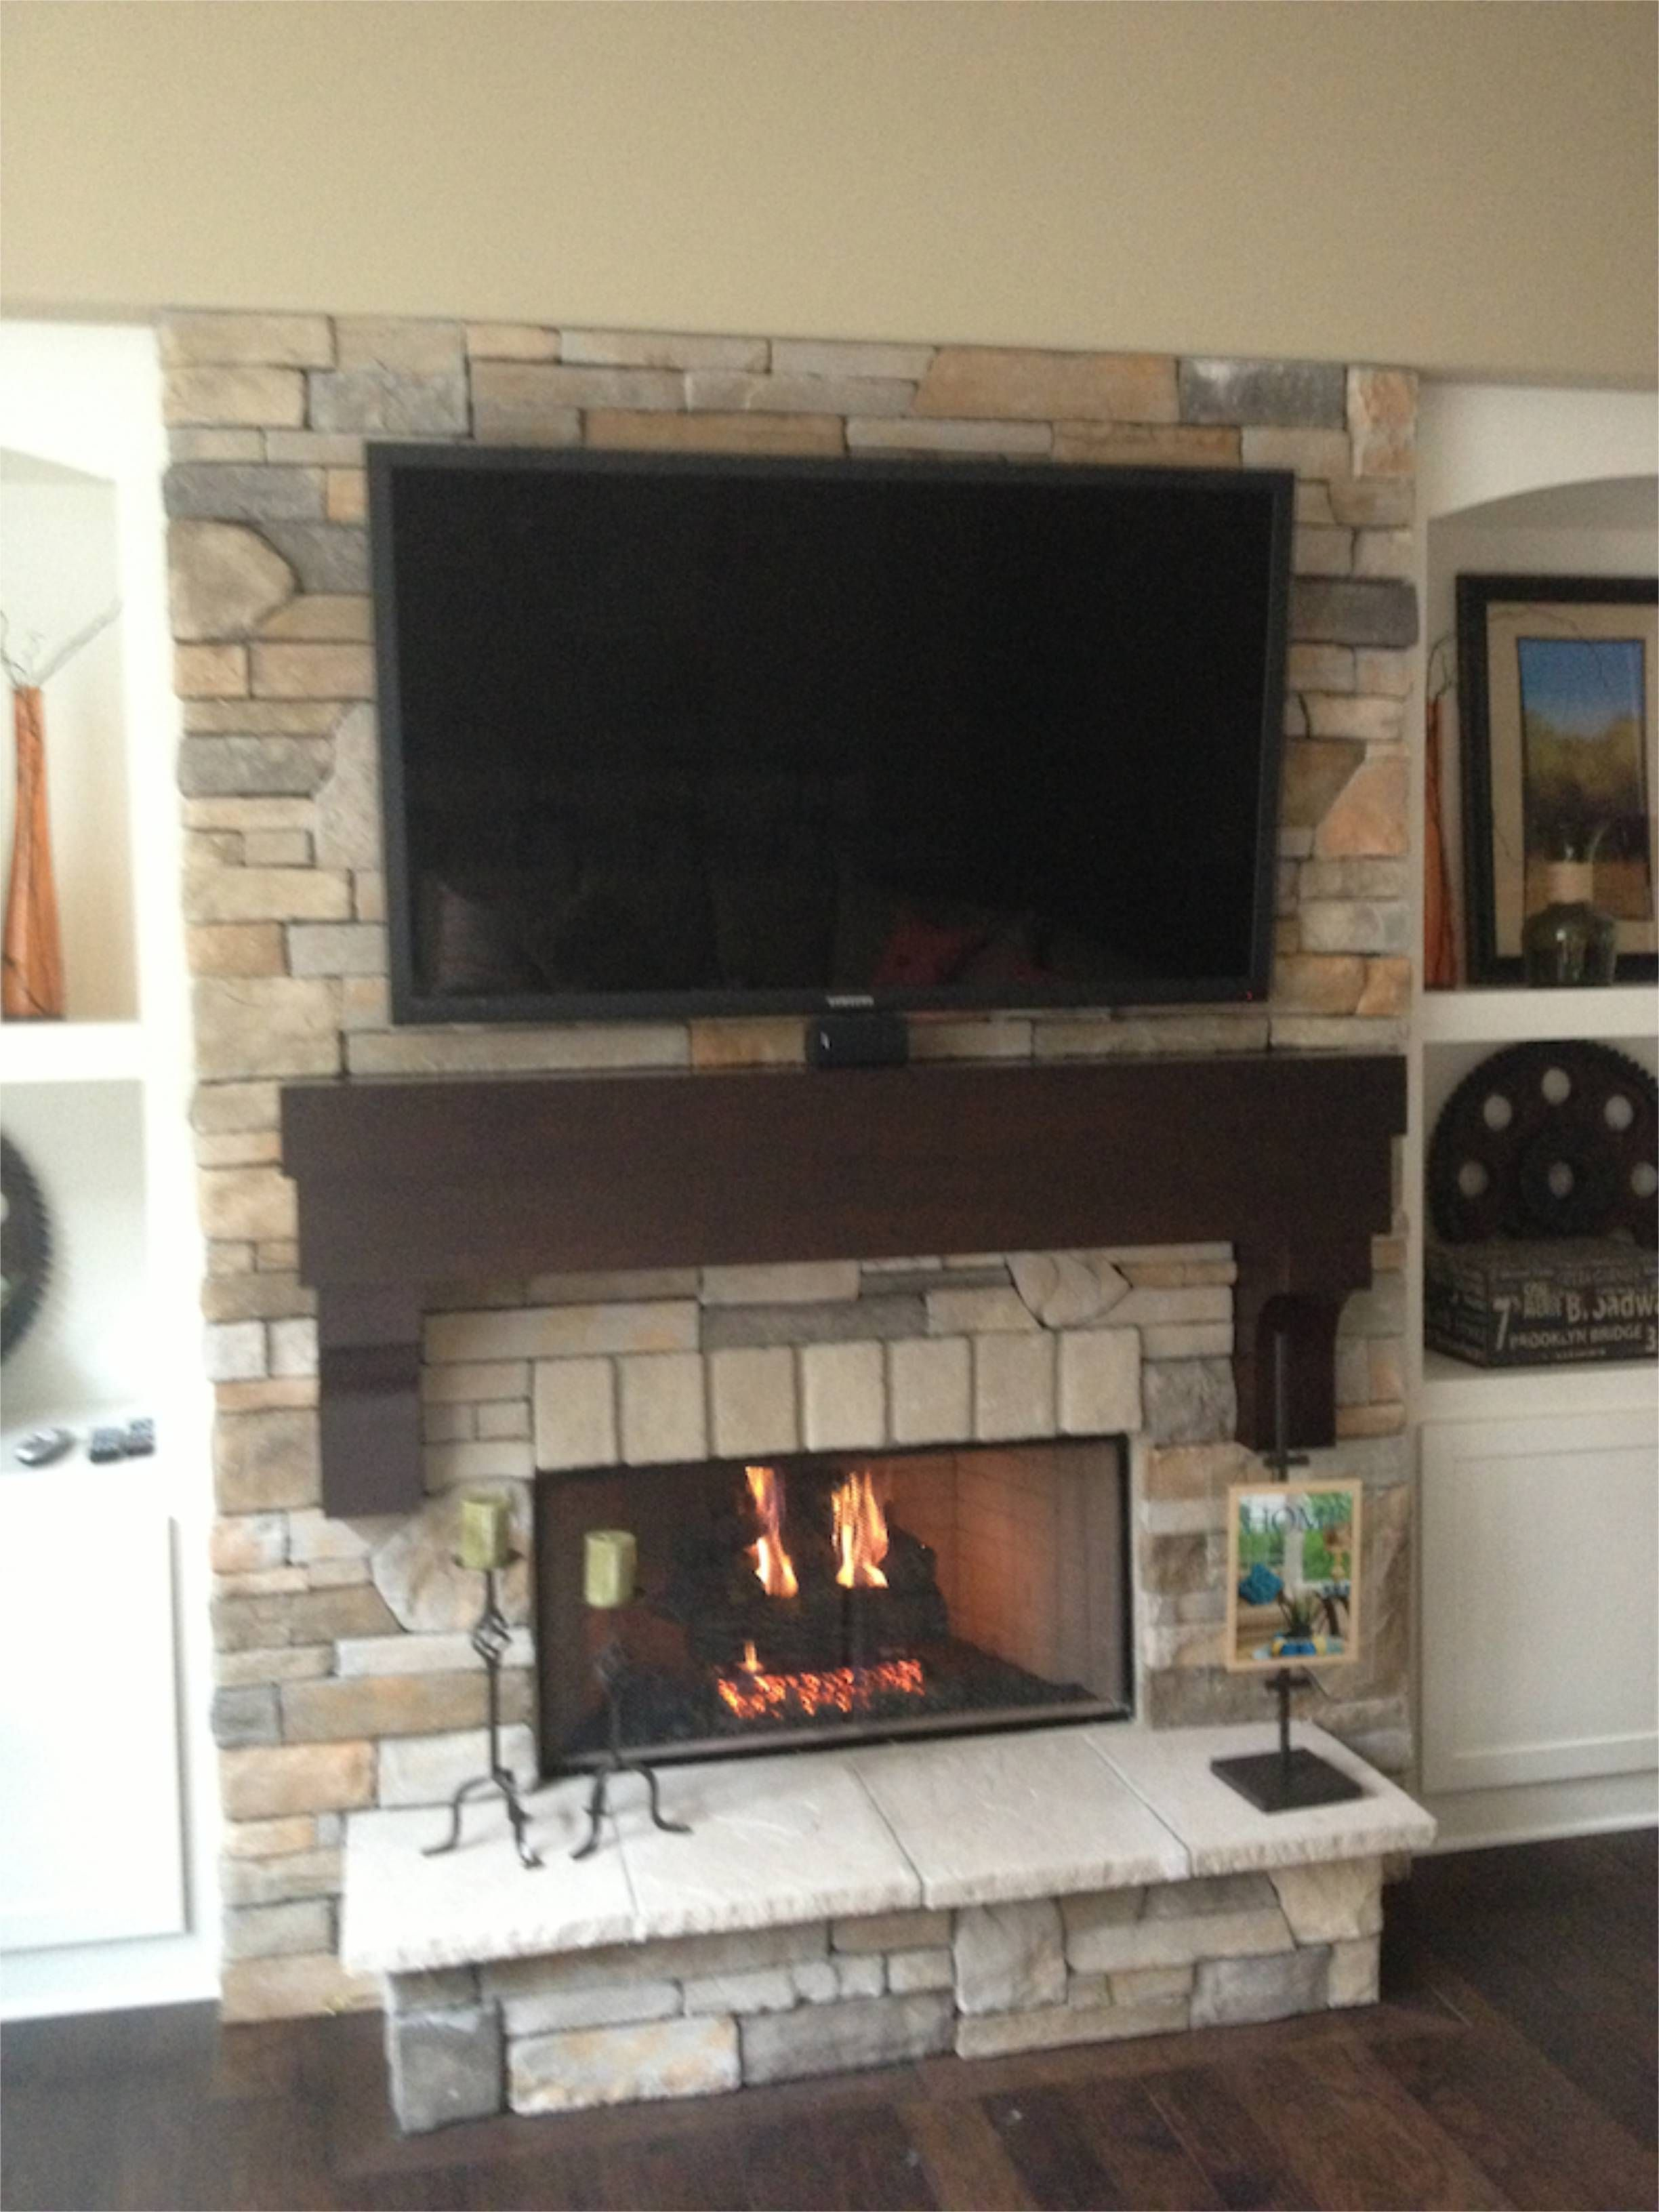 Faux Fireplace Insert Diy Ventless Gas Log Fireplace My Husband And I Built For Our